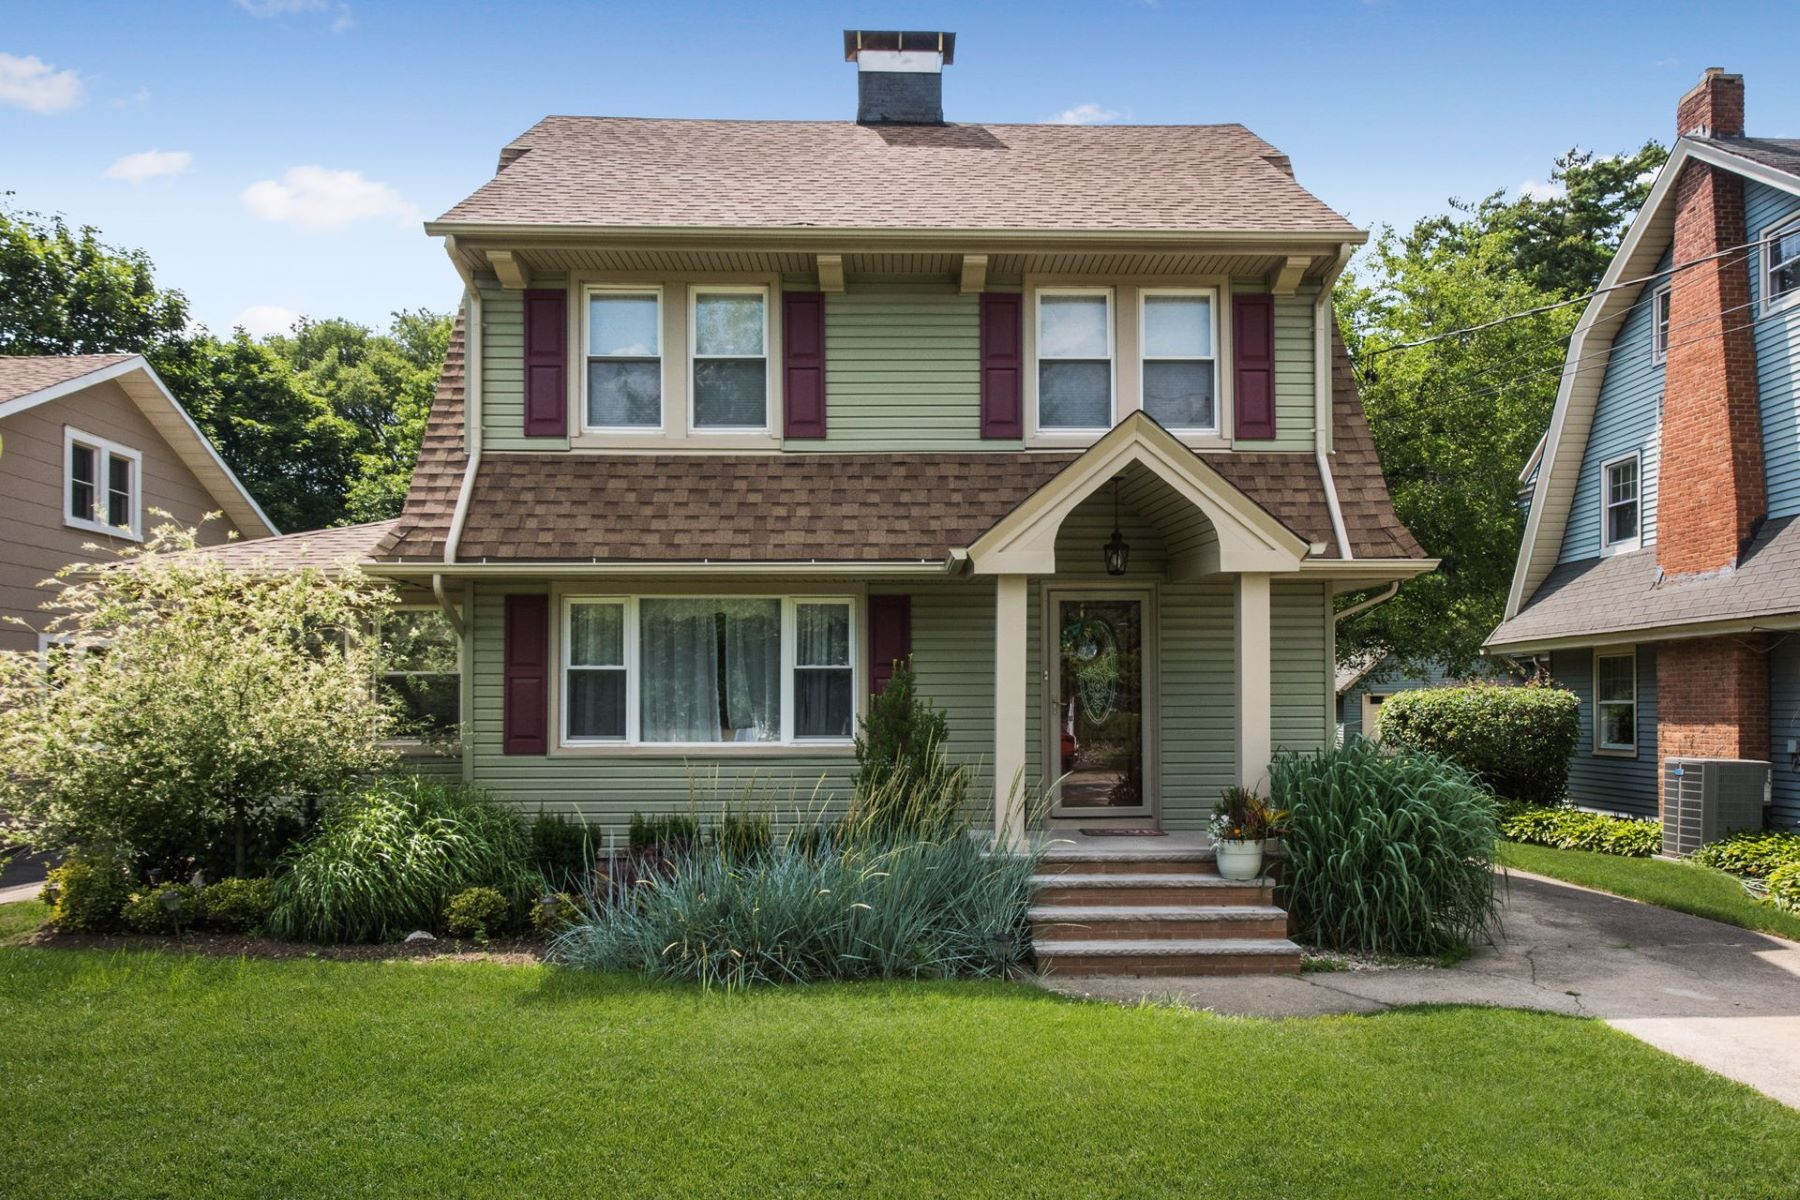 Single Family Homes for Active at Baldwin 2630 Harrison Ave Baldwin, New York 11510 United States